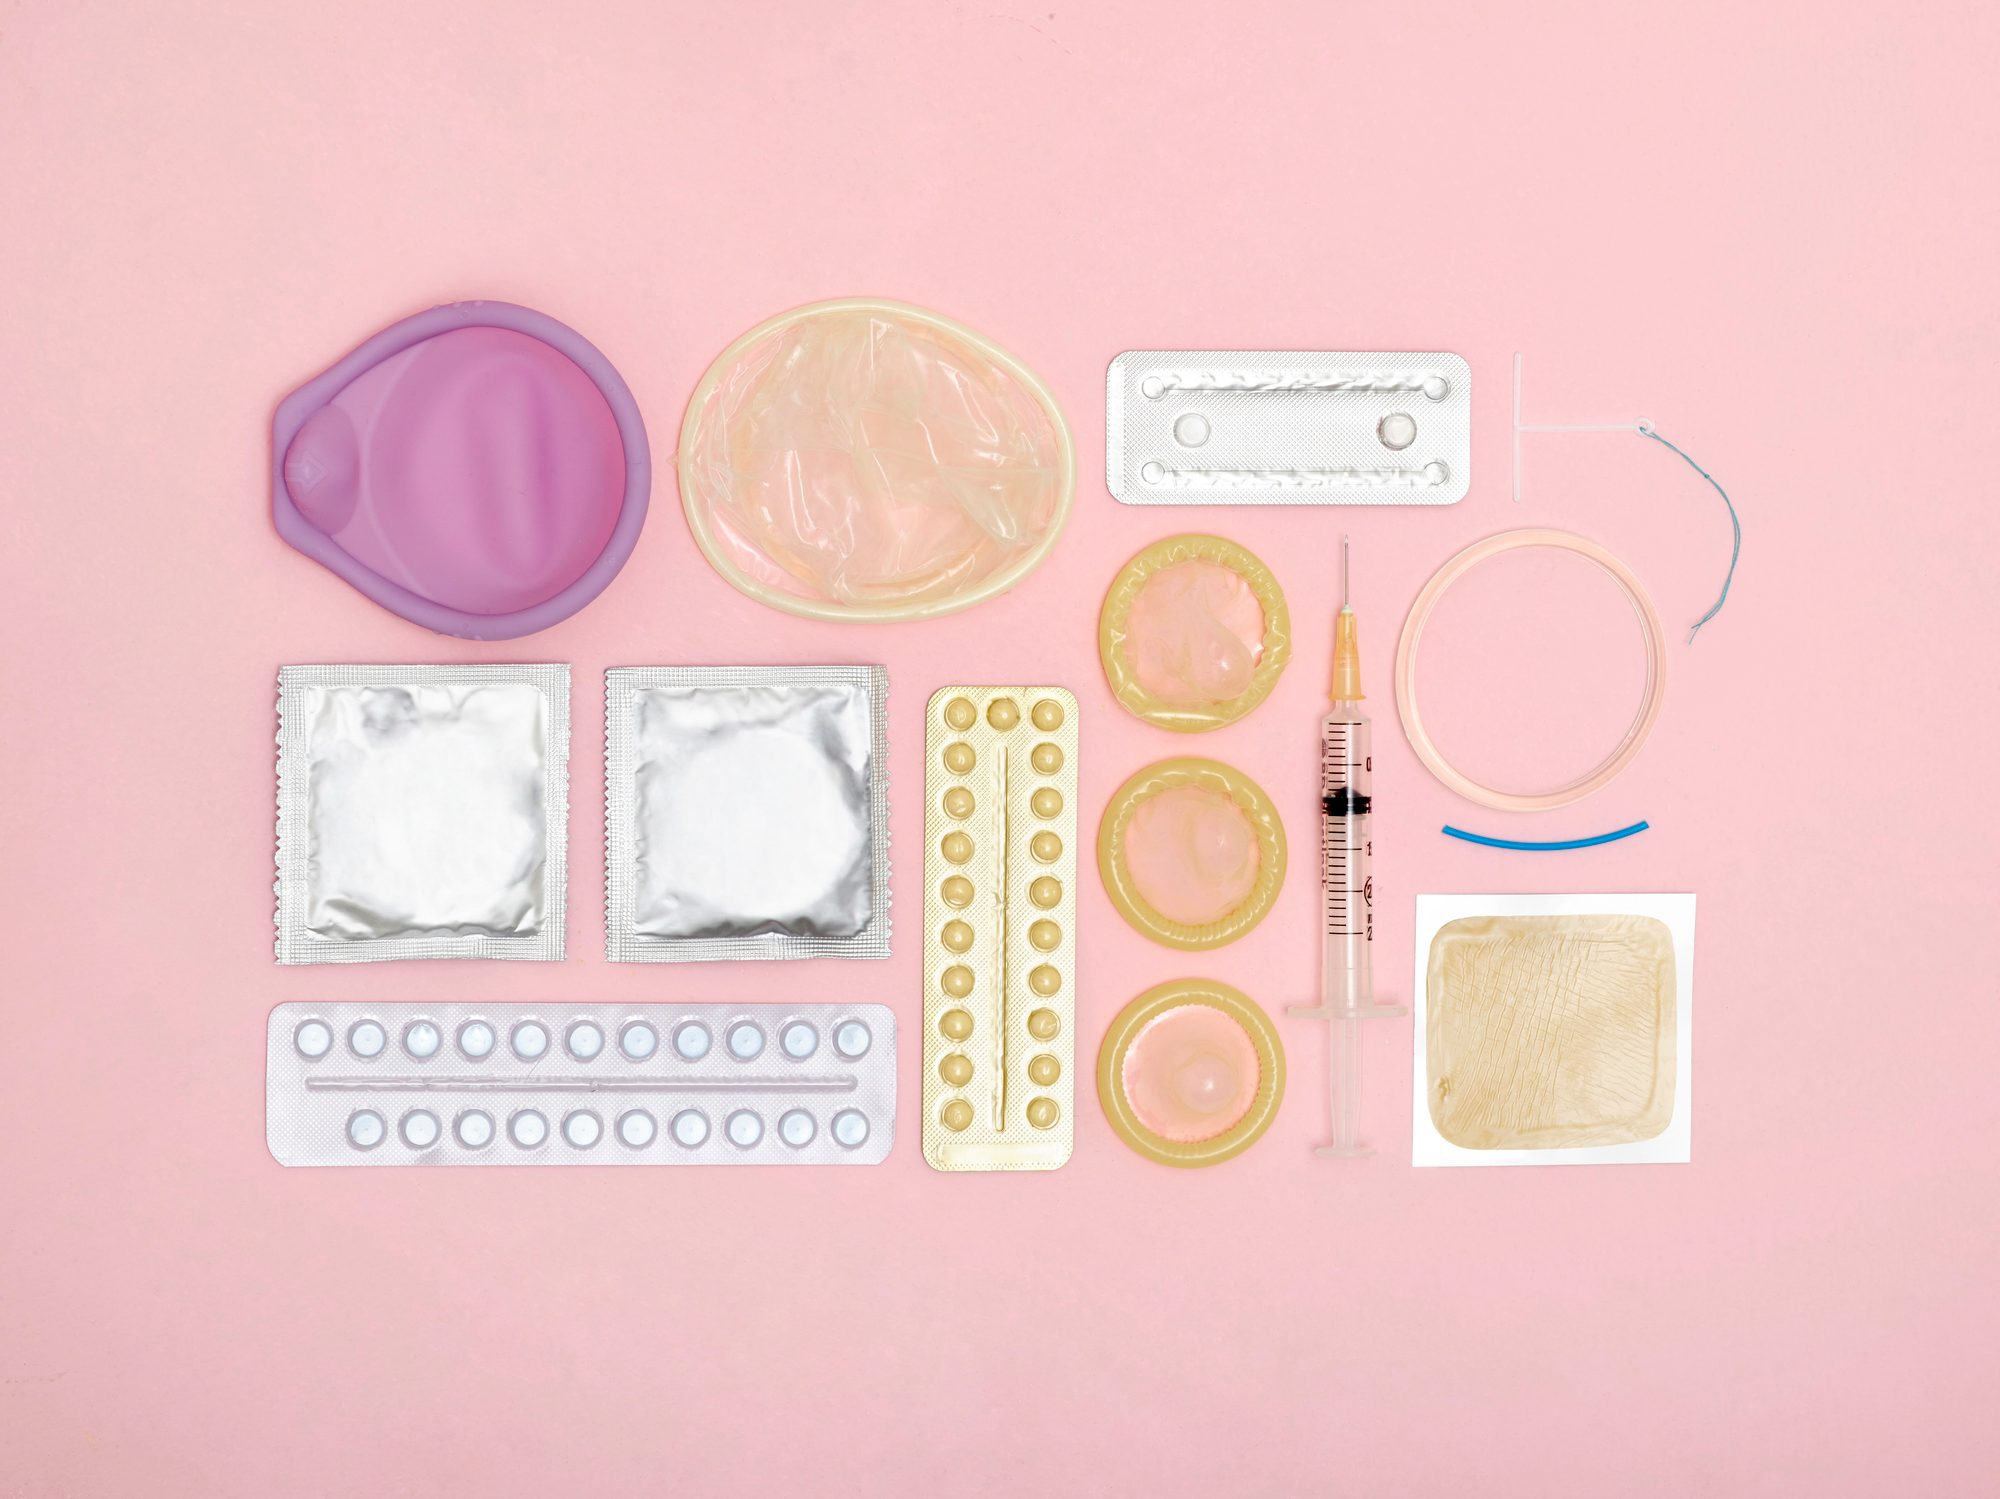 variety of birth control methods on pink background